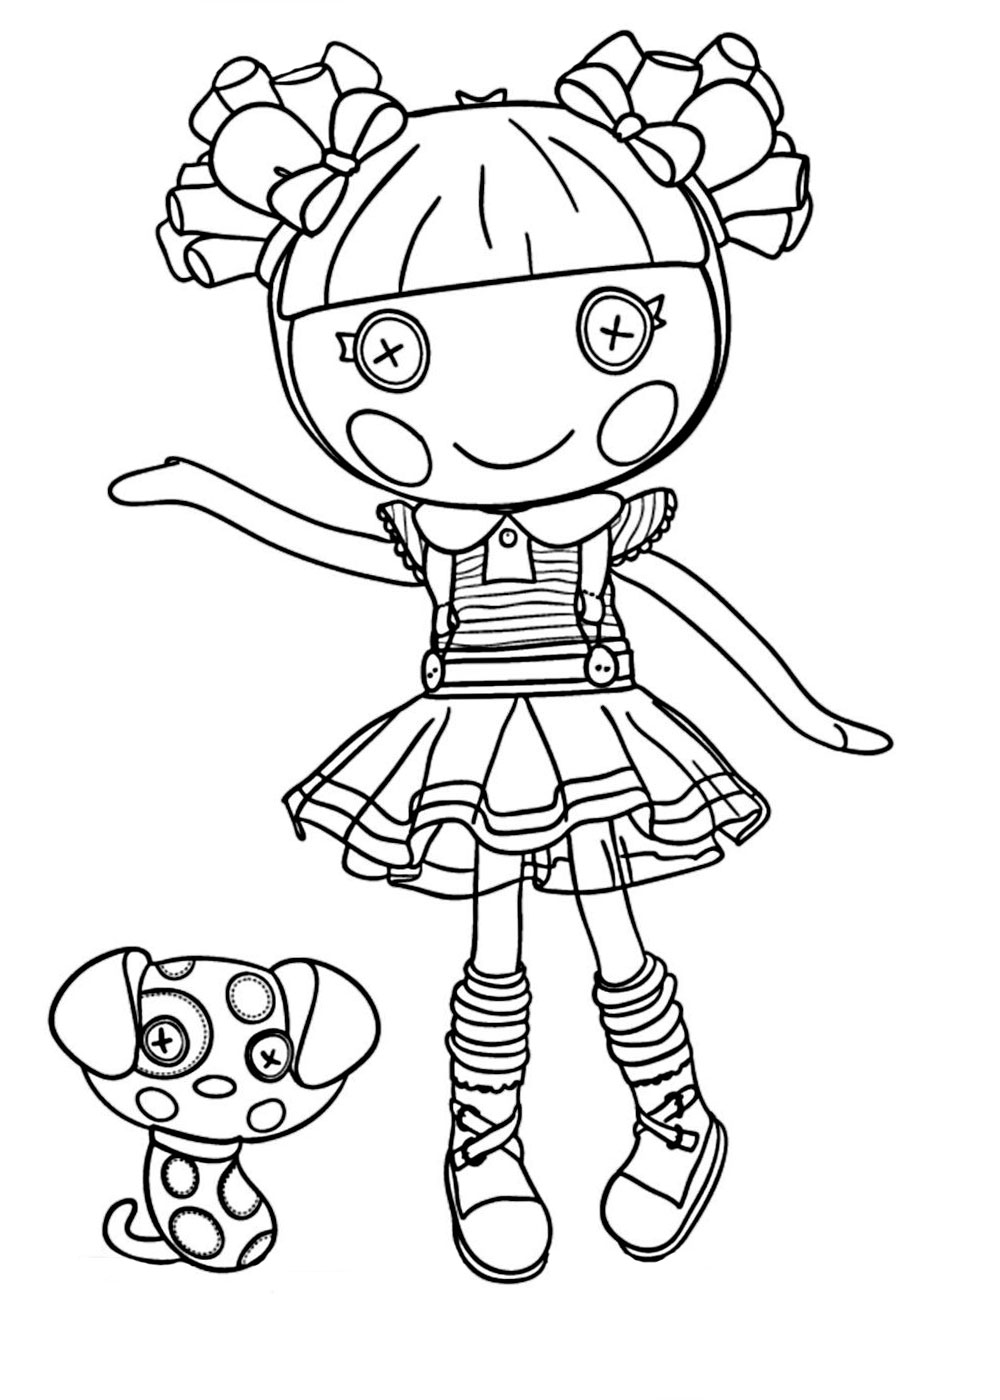 lalaloopsy babies coloring pages - photo#5